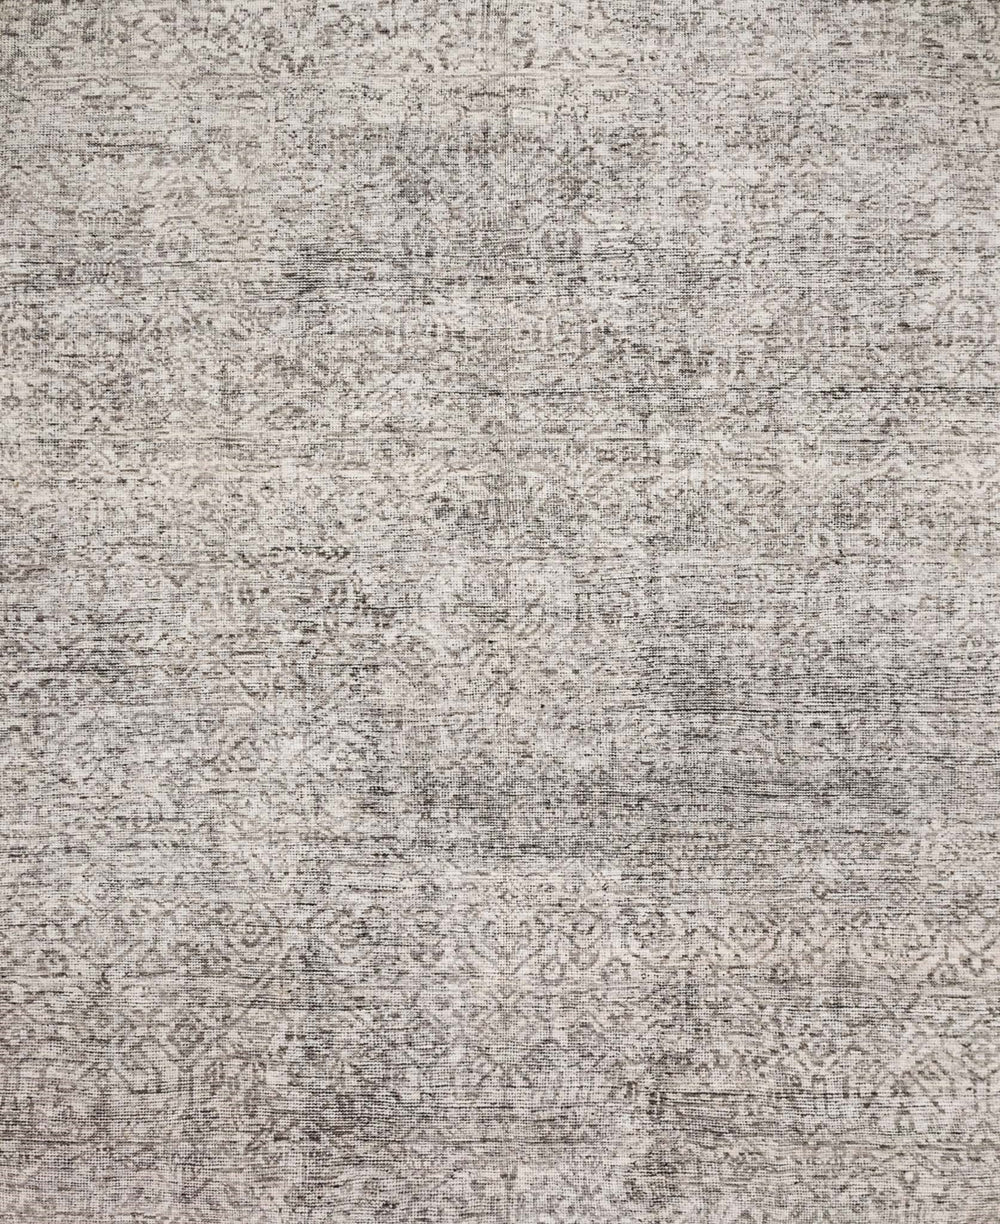 Hand-knotted in India of 100% wool, the Amara Collection creates a casual yet refined vibe with high-end appeal.  Hand Knotted 100% Wool India AMM-04 Ivory/Taupe